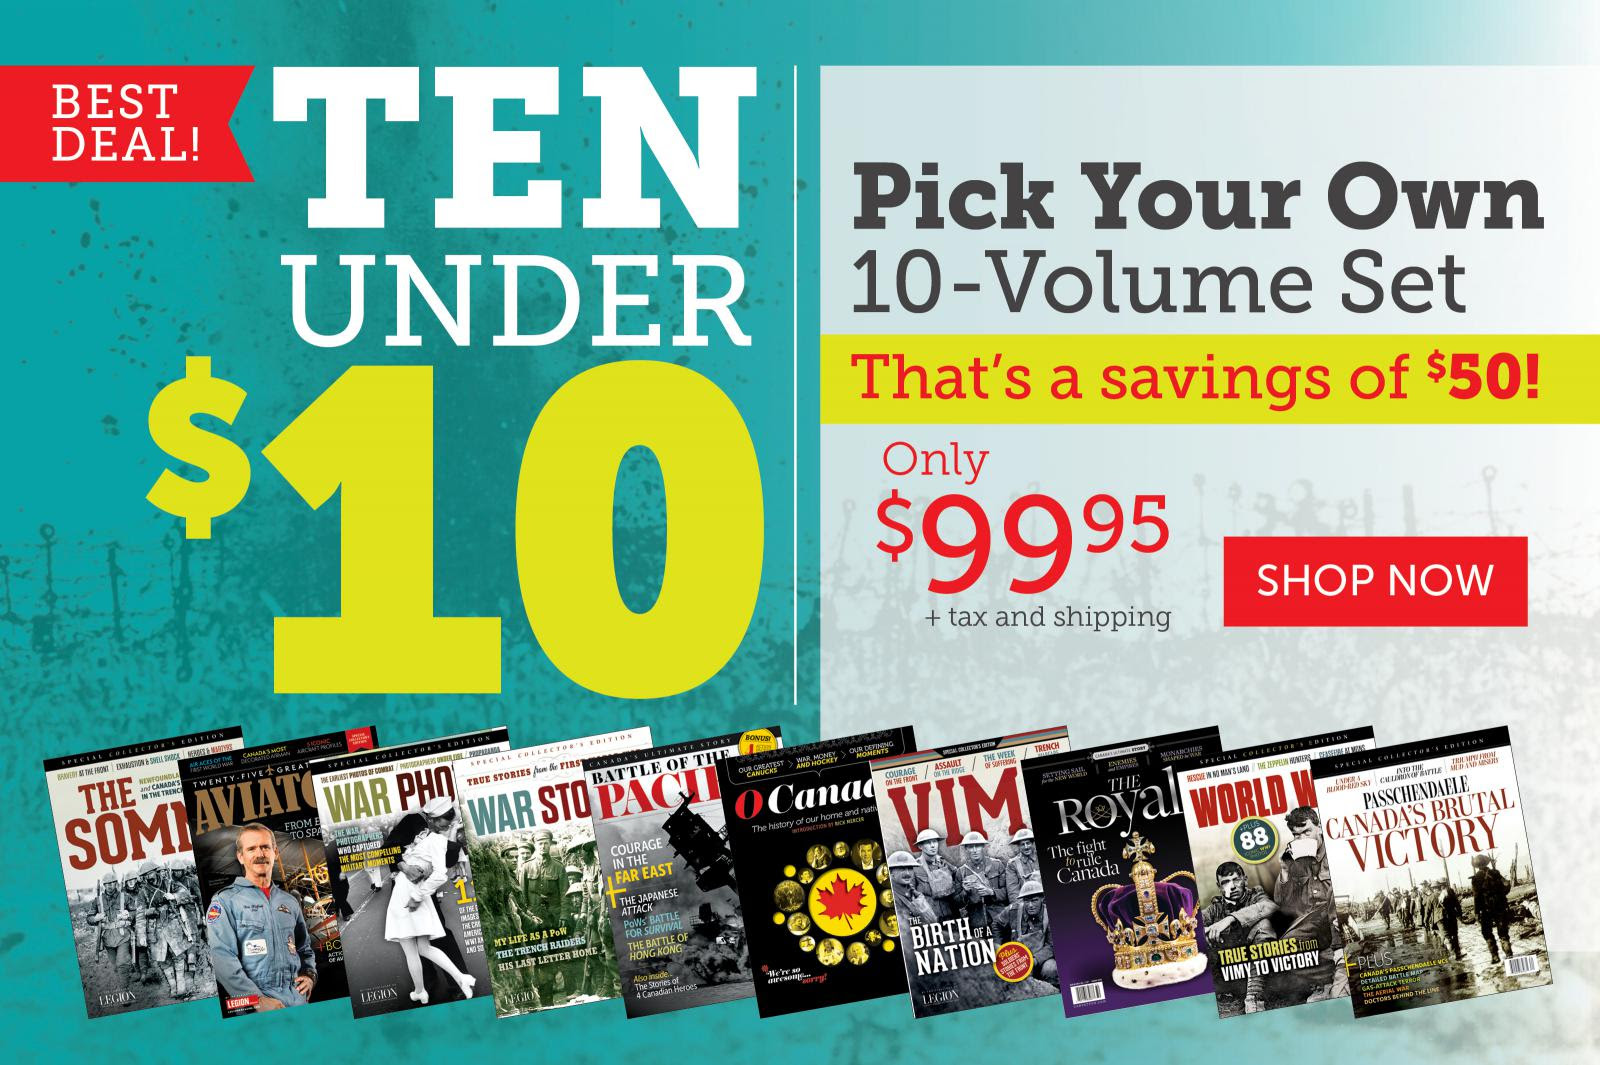 Best Deal! Ten under Ten!